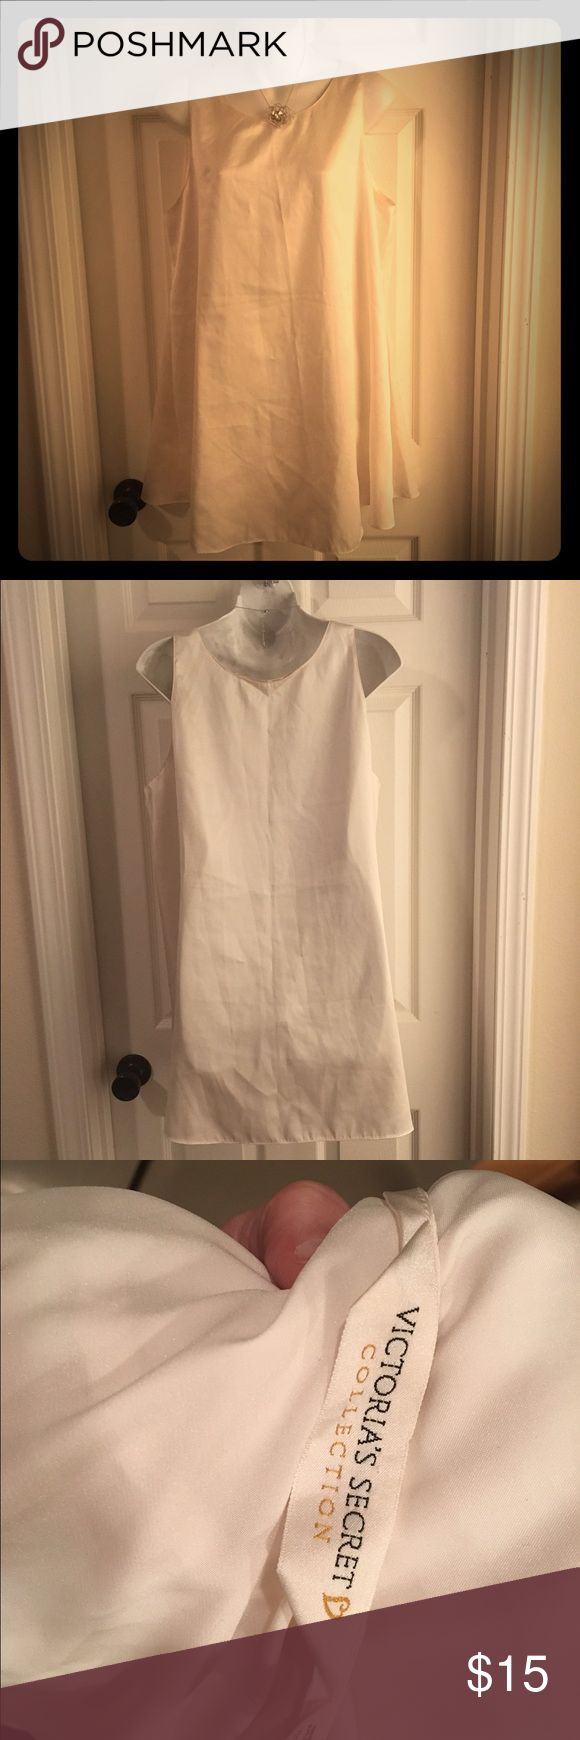 """Victoria's Secret Simple Satin Chemise Nightie VS A simple VS Collection Satin Chemise/Nightie/Gown in an antique white. Size Large. Measures 22"""" pit-to-pit and 32"""" long. 100% polyester satin. Excellent condition. Victoria's Secret Intimates & Sleepwear Chemises & Slips"""